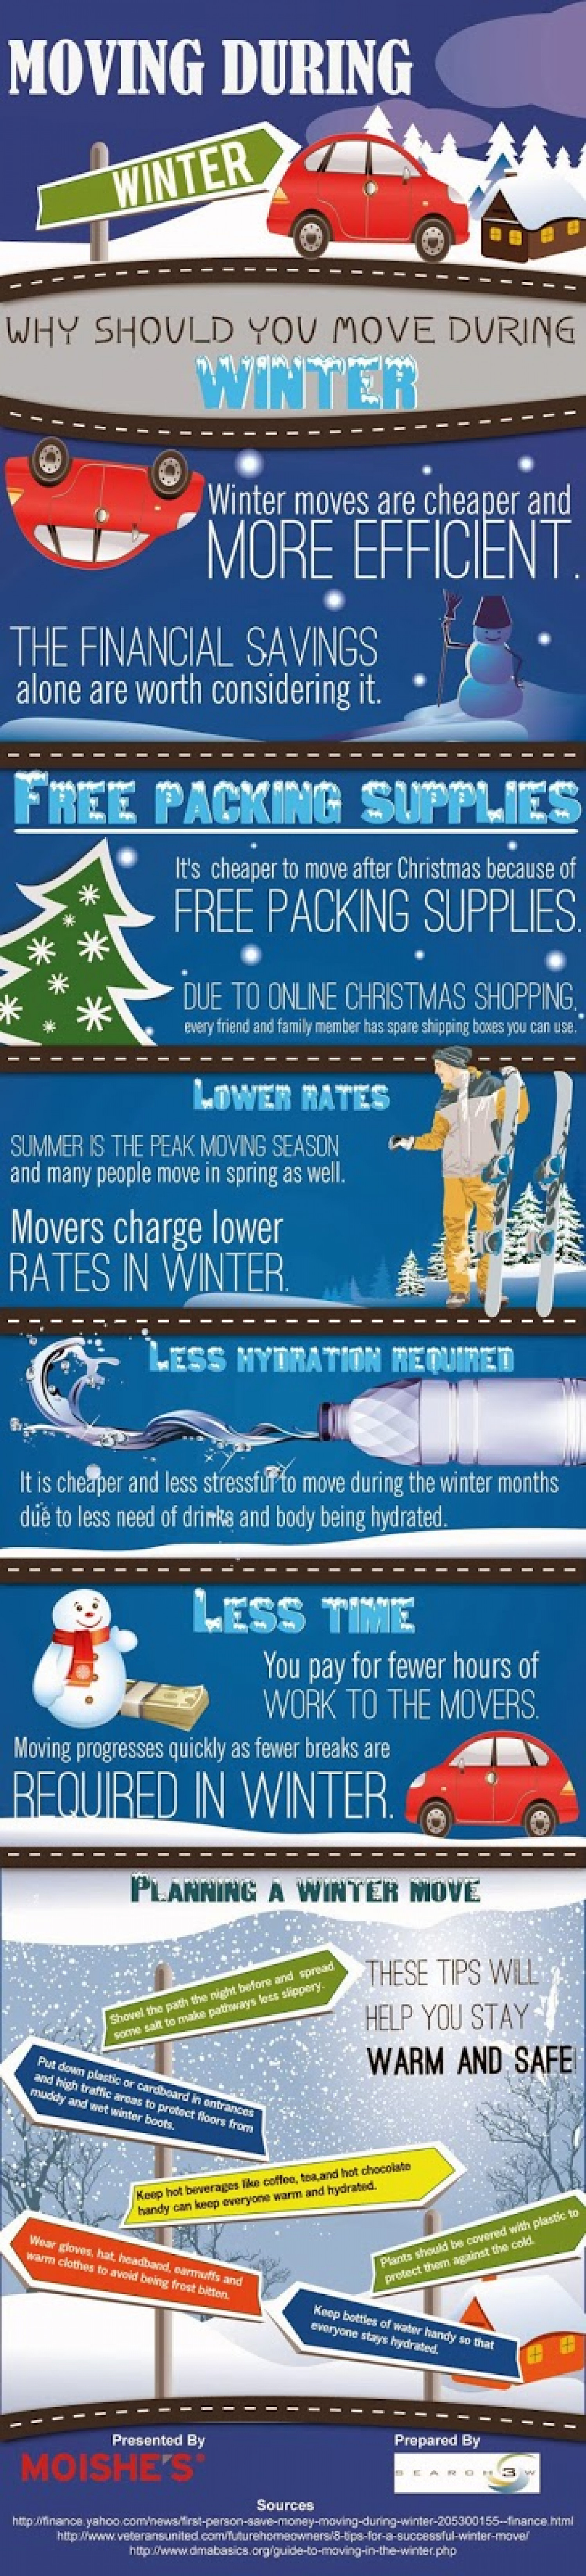 Moving during Winter Infographic